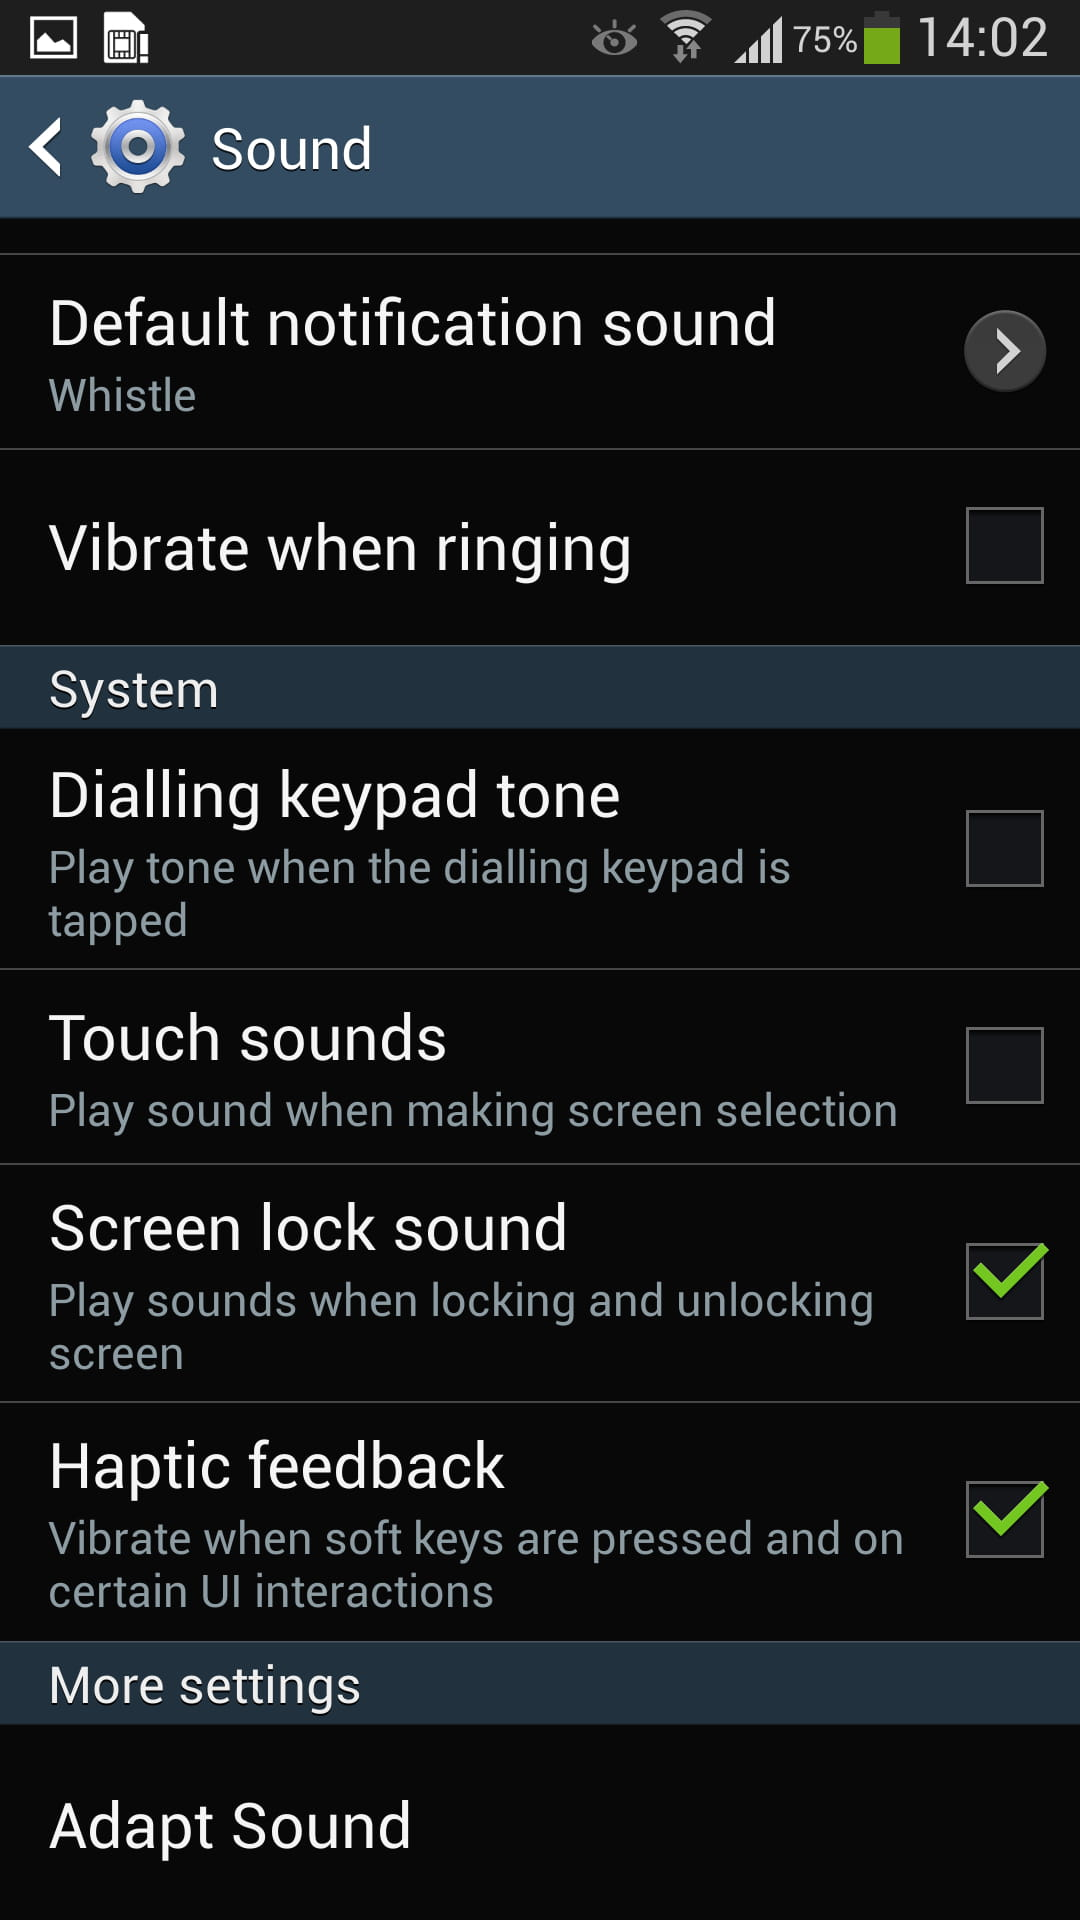 Samsung galaxy s4 enable screen lock sounds related samsung galaxy s4 enable ccuart Gallery